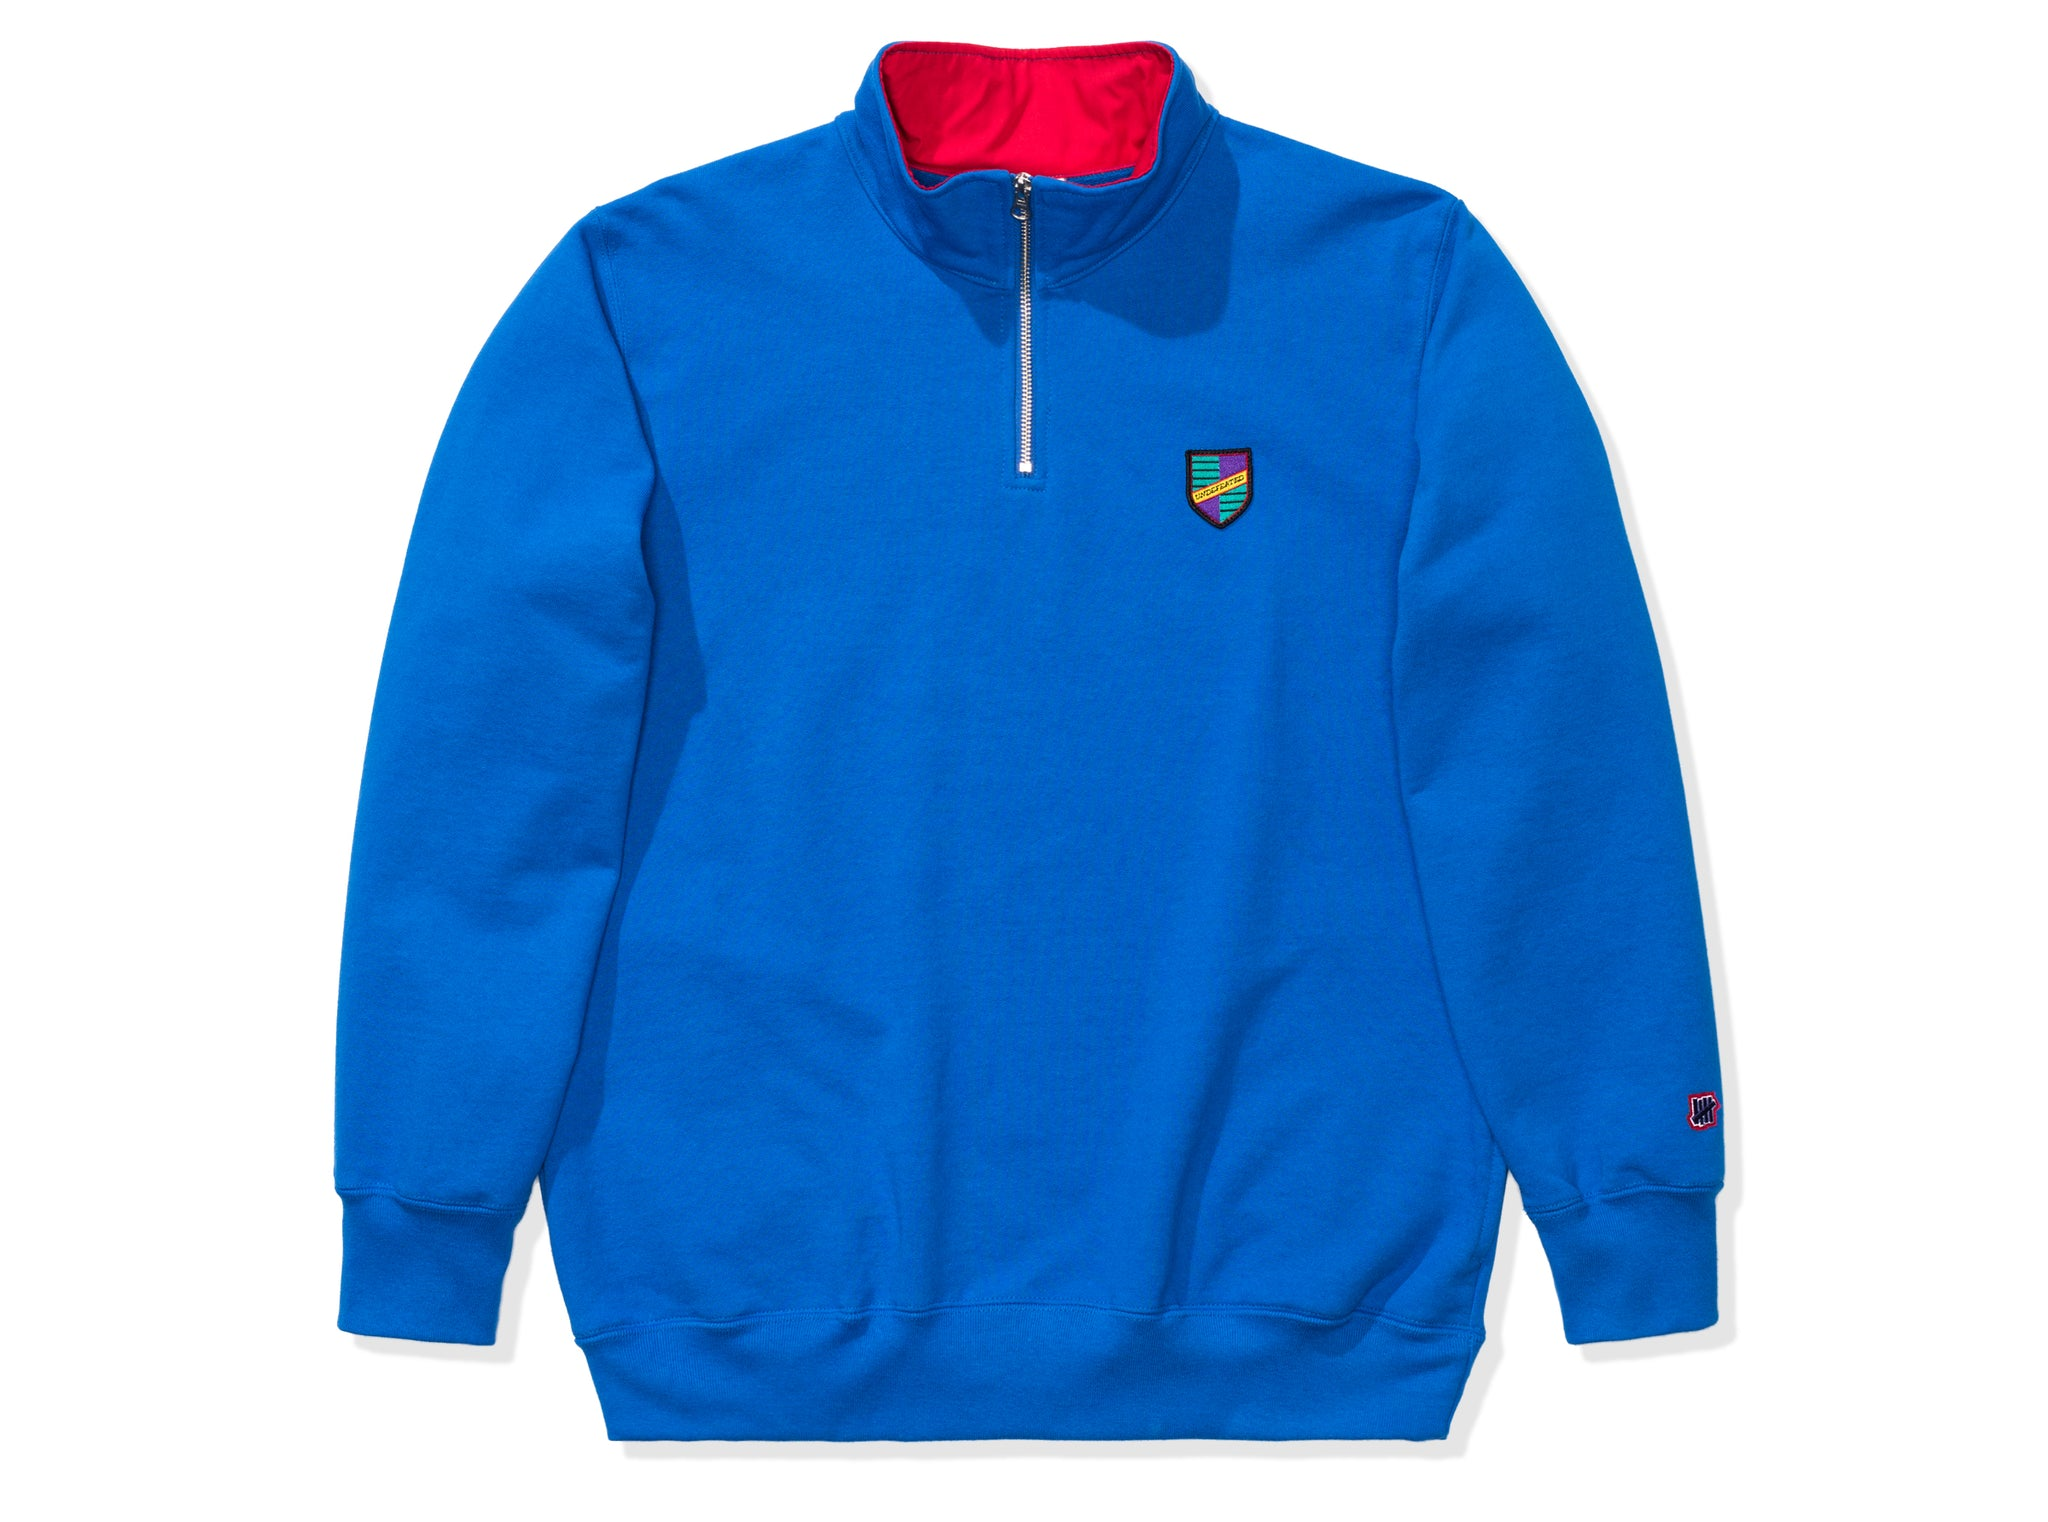 UNDEFEATED CREST QUARTER ZIP PULLOVER